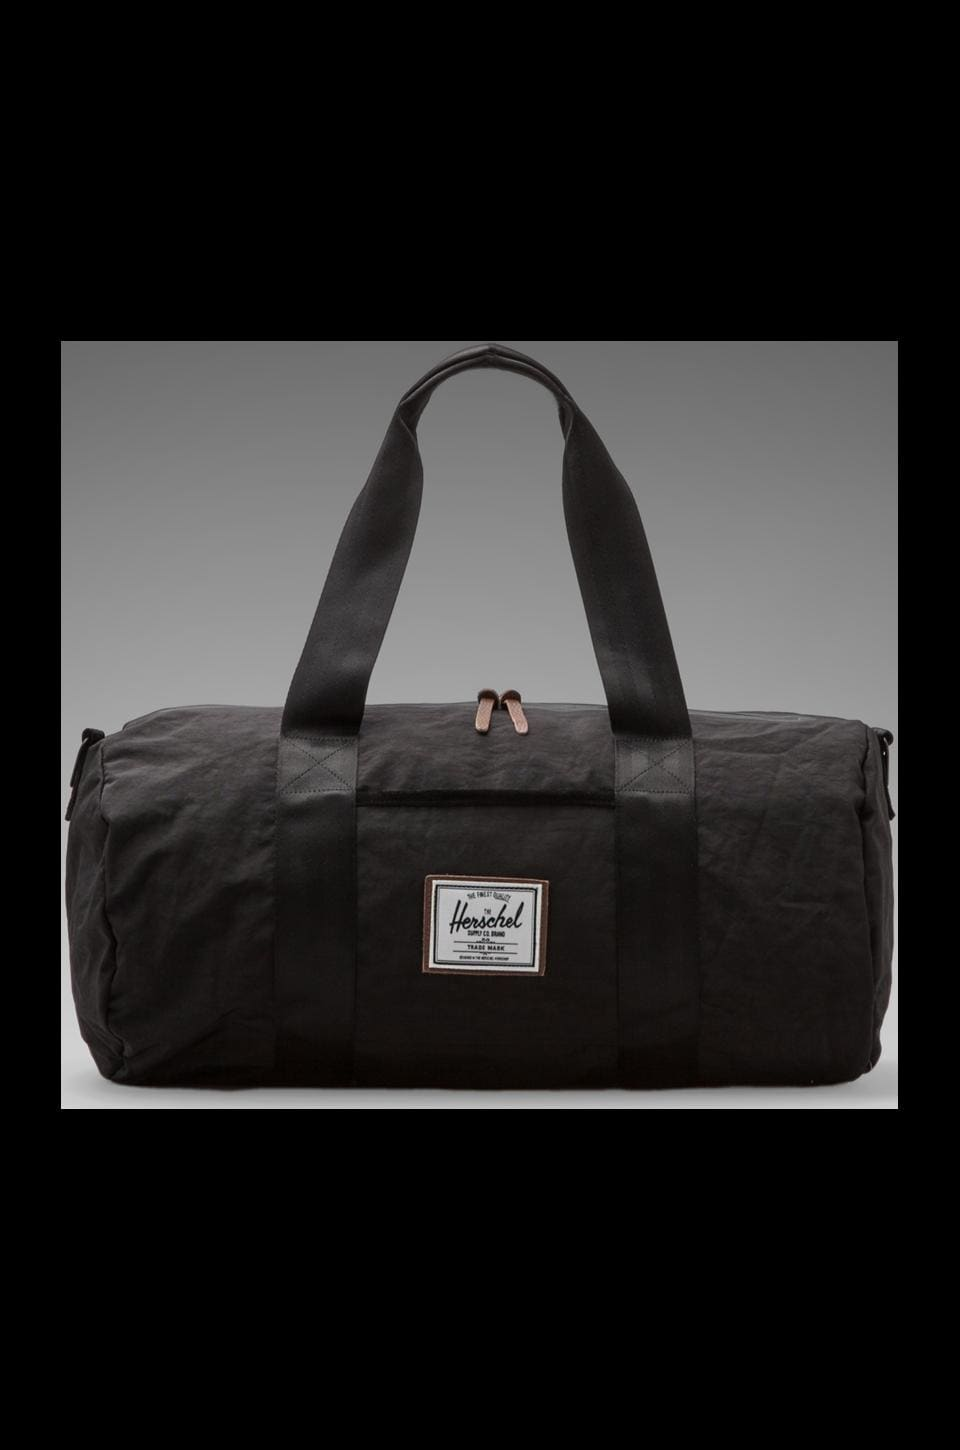 Herschel Supply Co. Bad Hills Collection Sutton Mid Duffle in Black